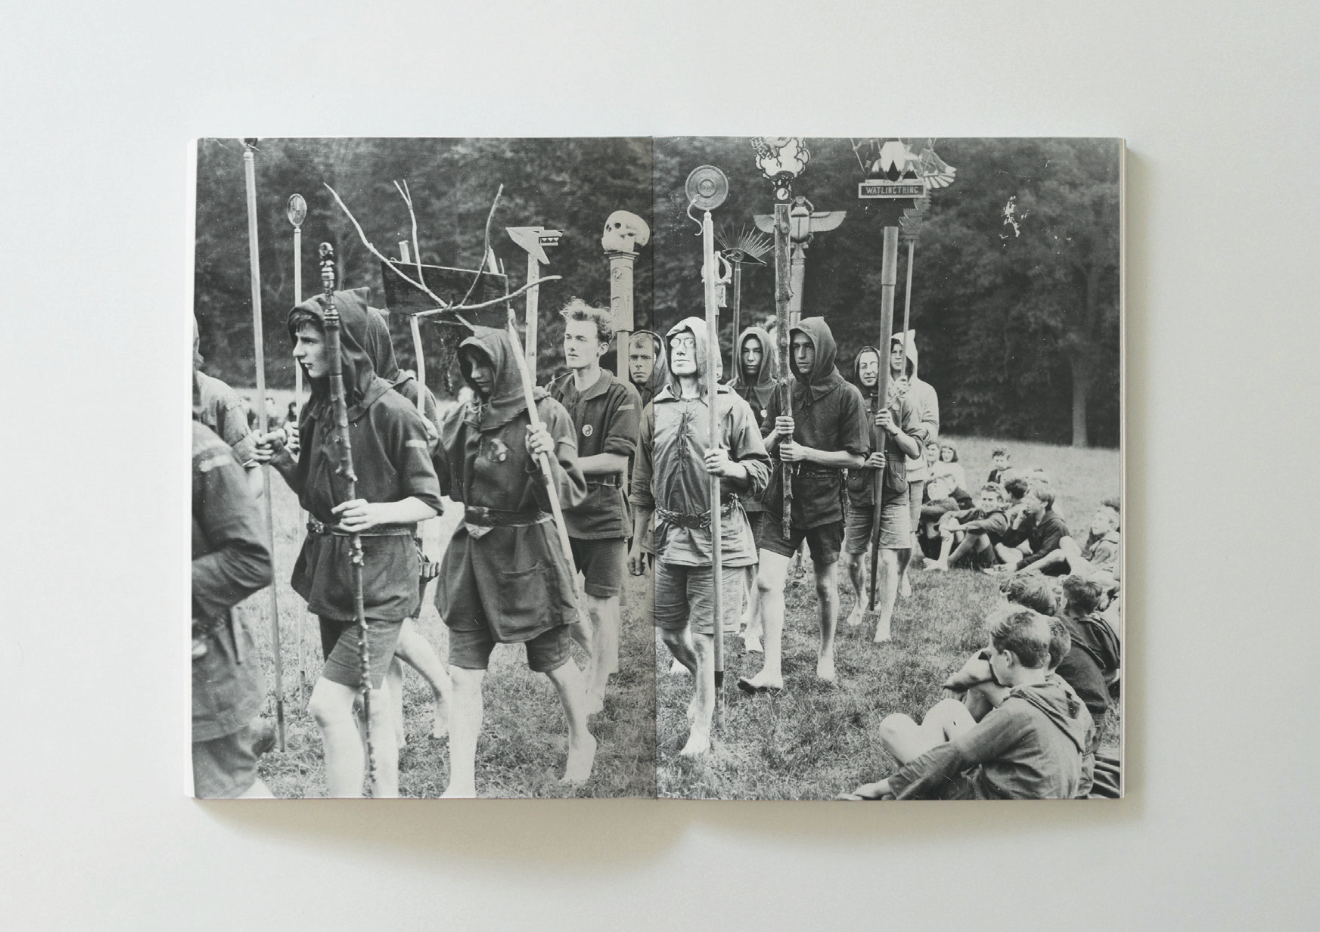 The Kindred of the Kibbo Kift: Intellectual Barbarians by Annebella Pollen}